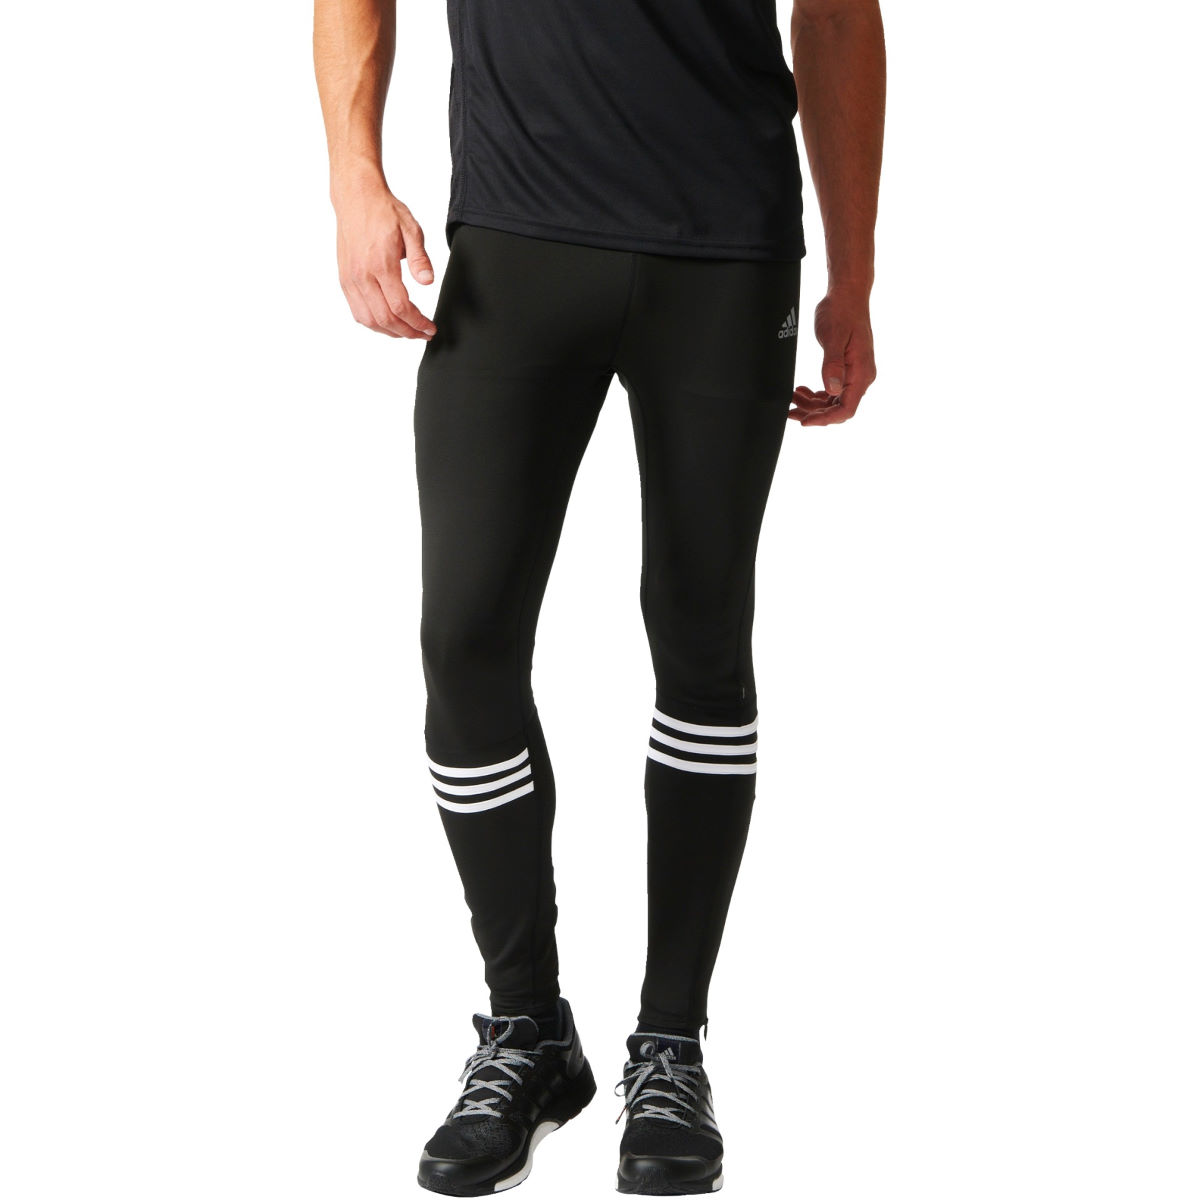 Adidas Response Long Tight (SS16)   Running Tights